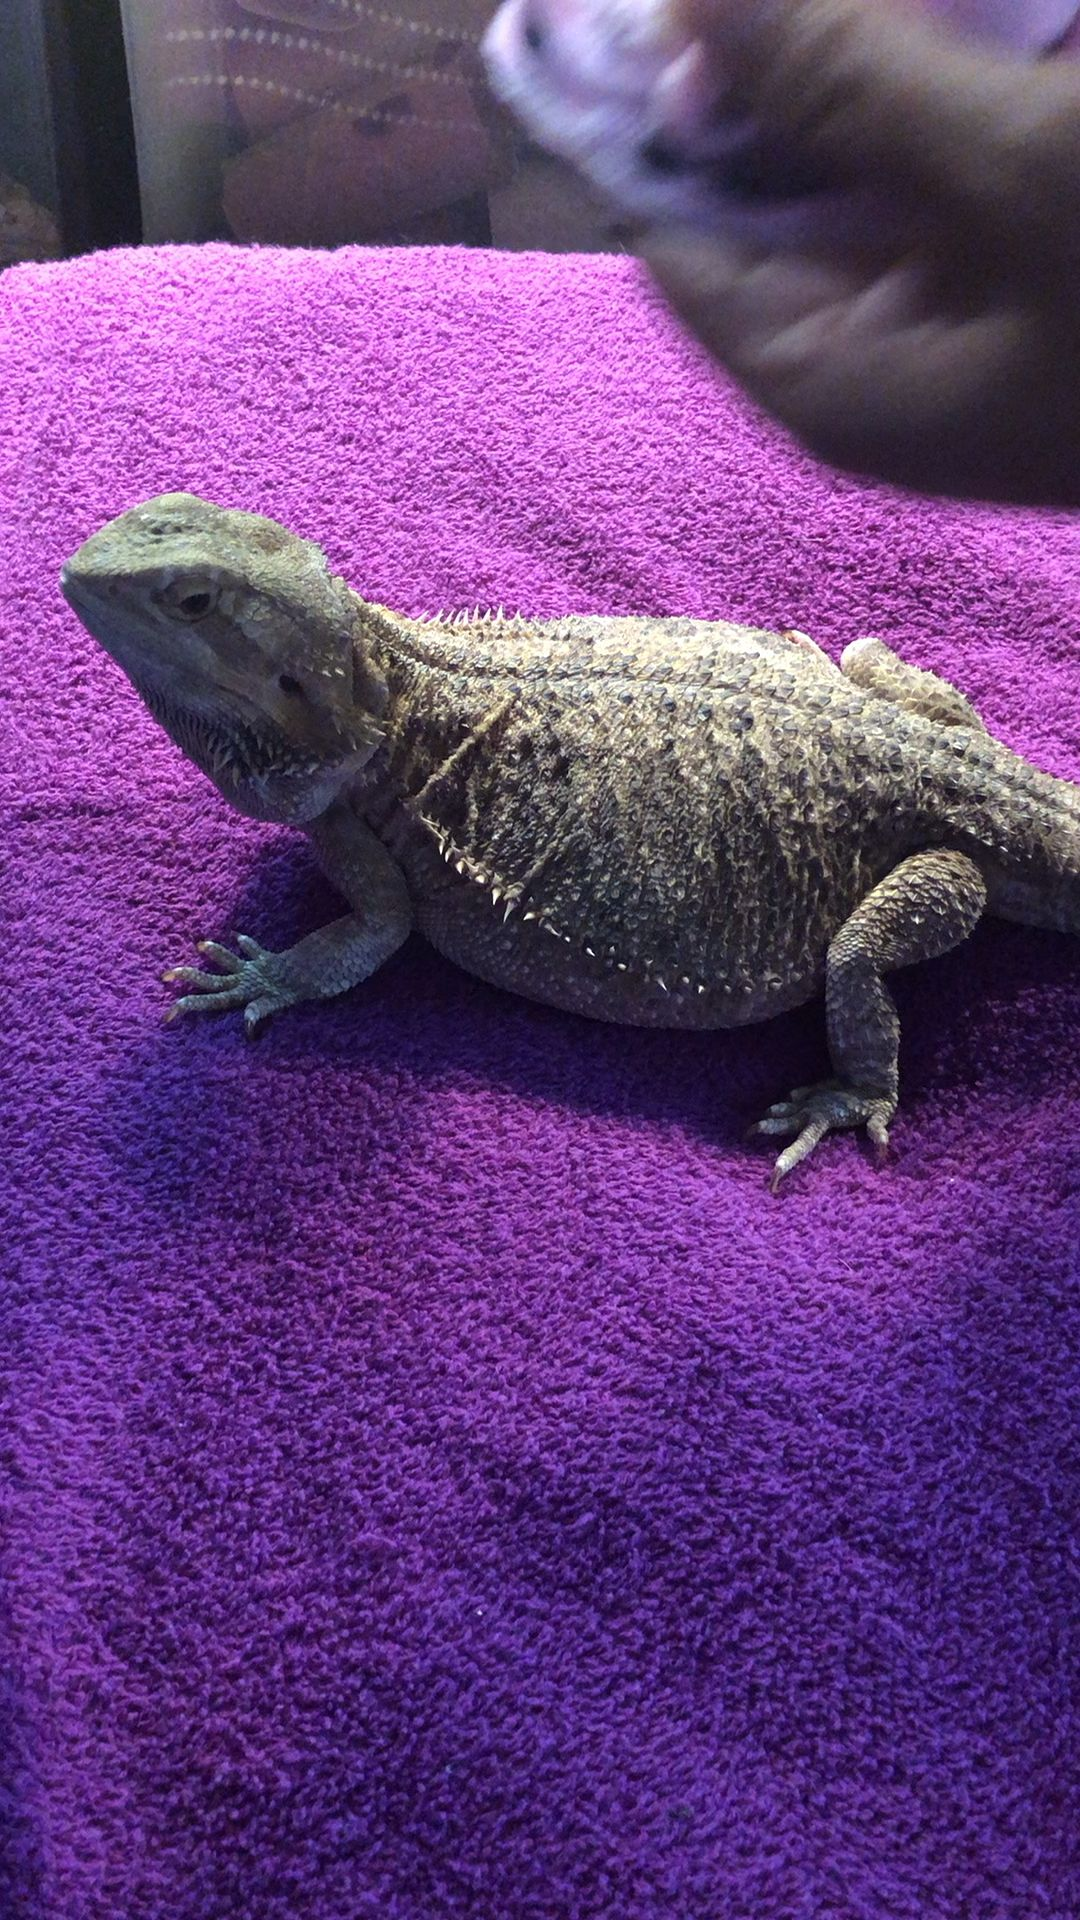 Curious how to put clothes on Bearded Dragons 🤔 so here it is 🤷🏻♀️👍🏼